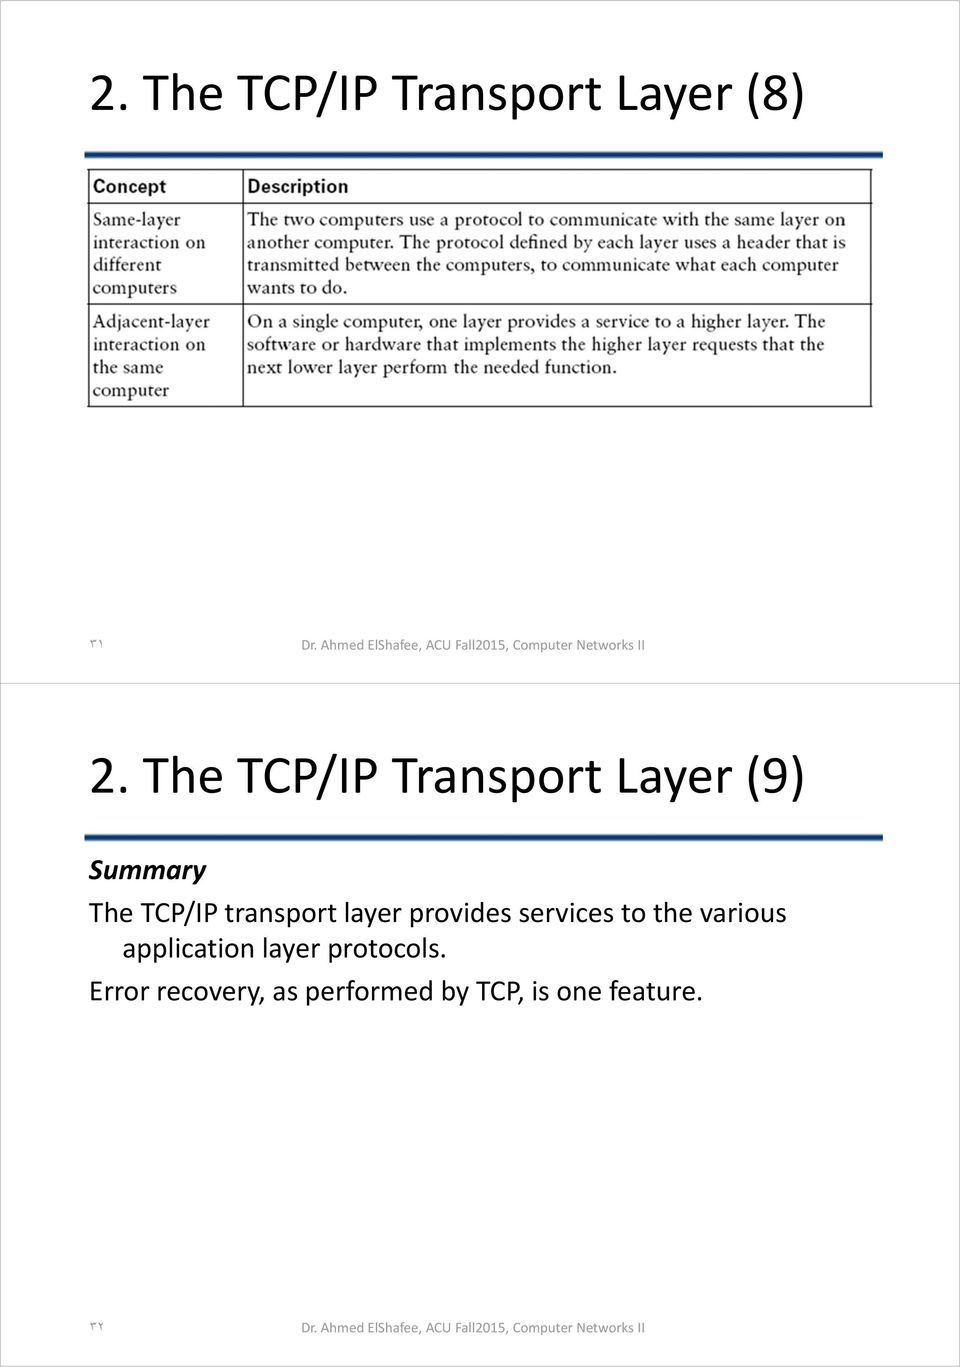 transport layer provides services to the various